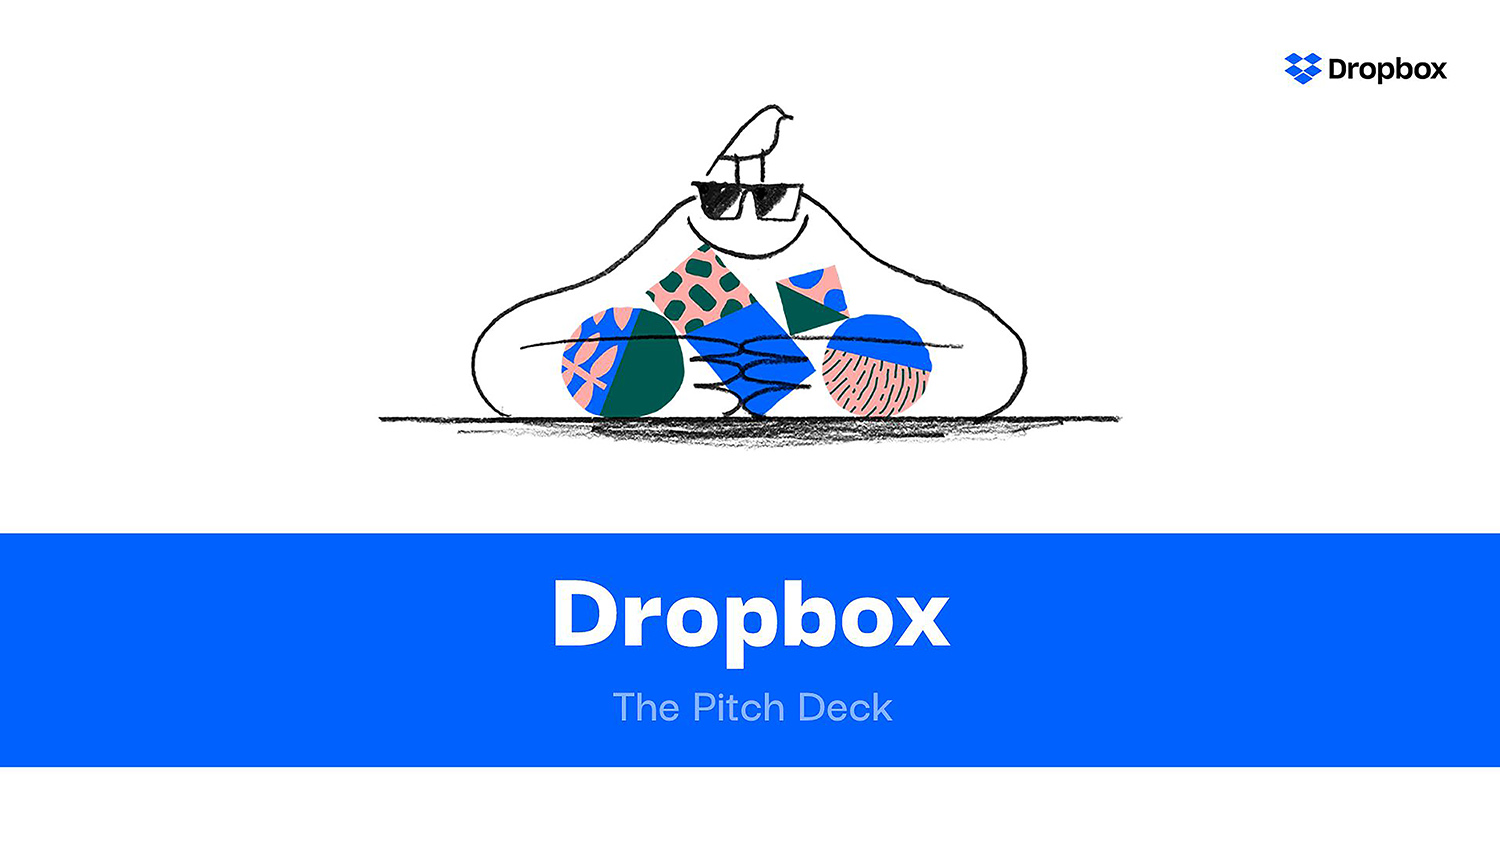 Dropbox Pitch Deck